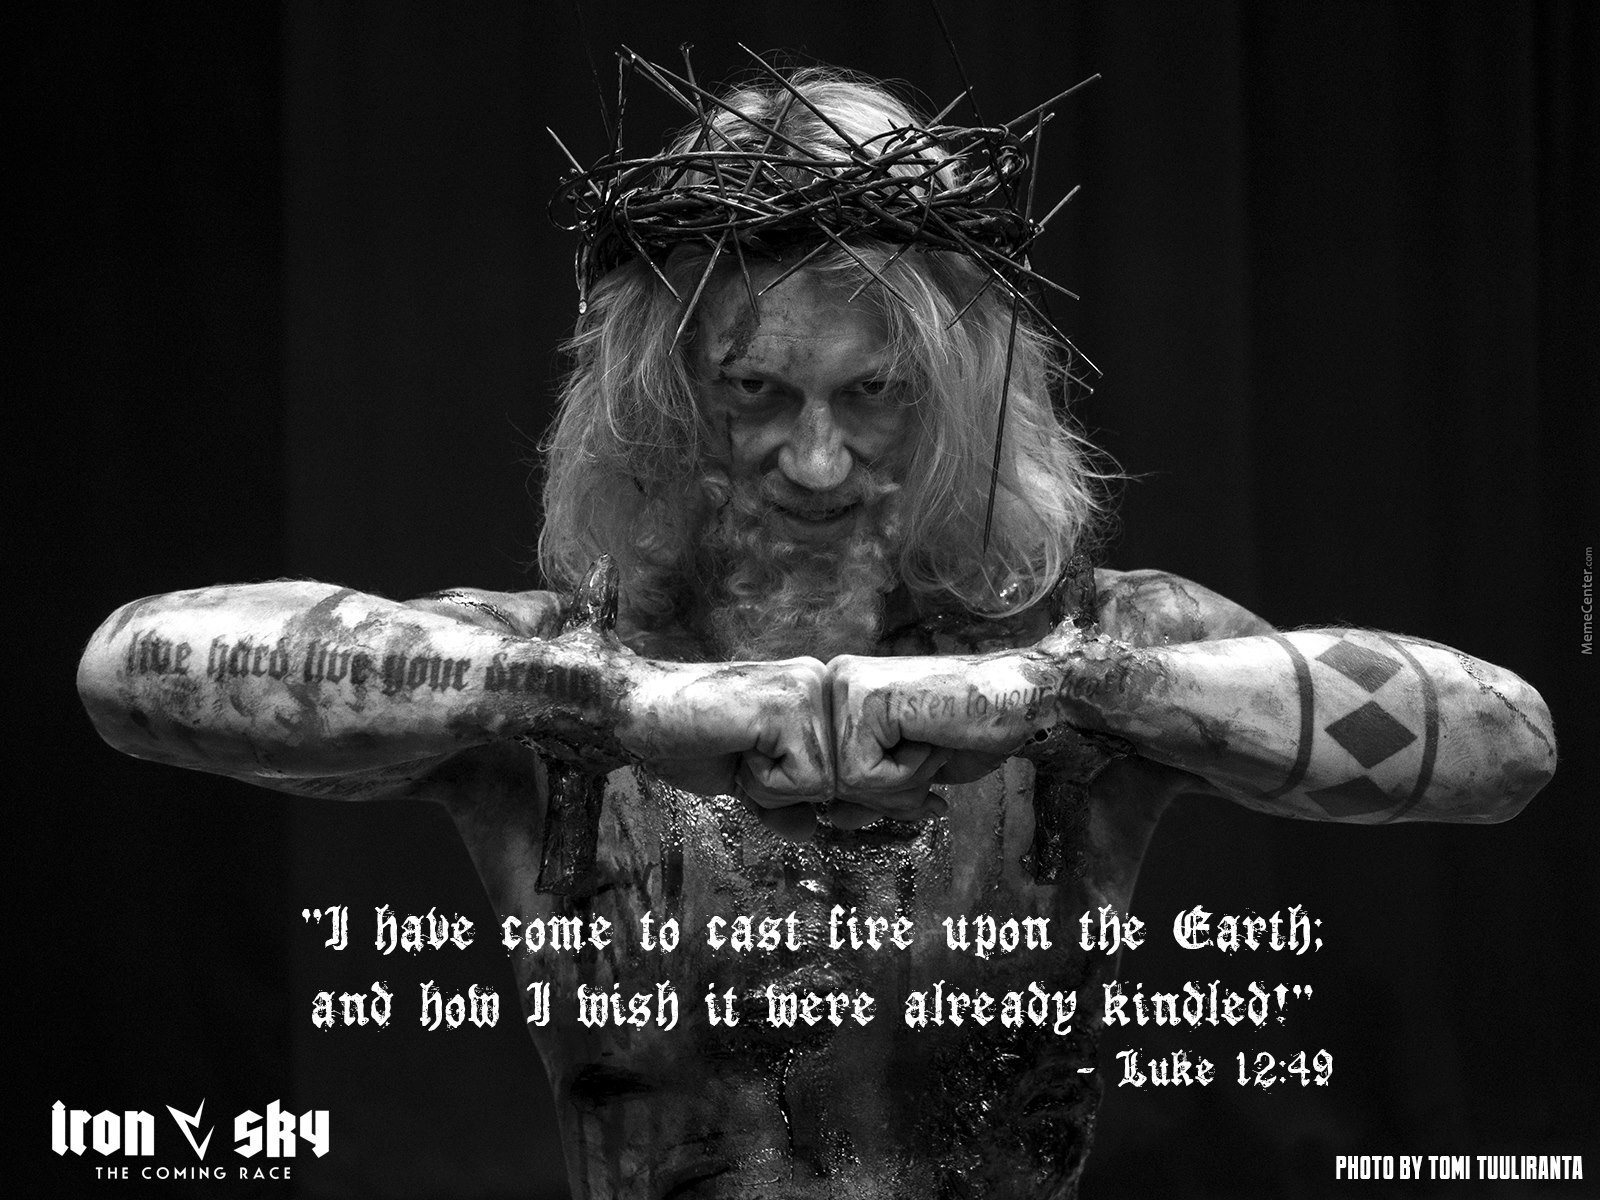 "Black Jesus Quotes Iron Sky"" Making Jesus Badass With Actual Bible Quotes."